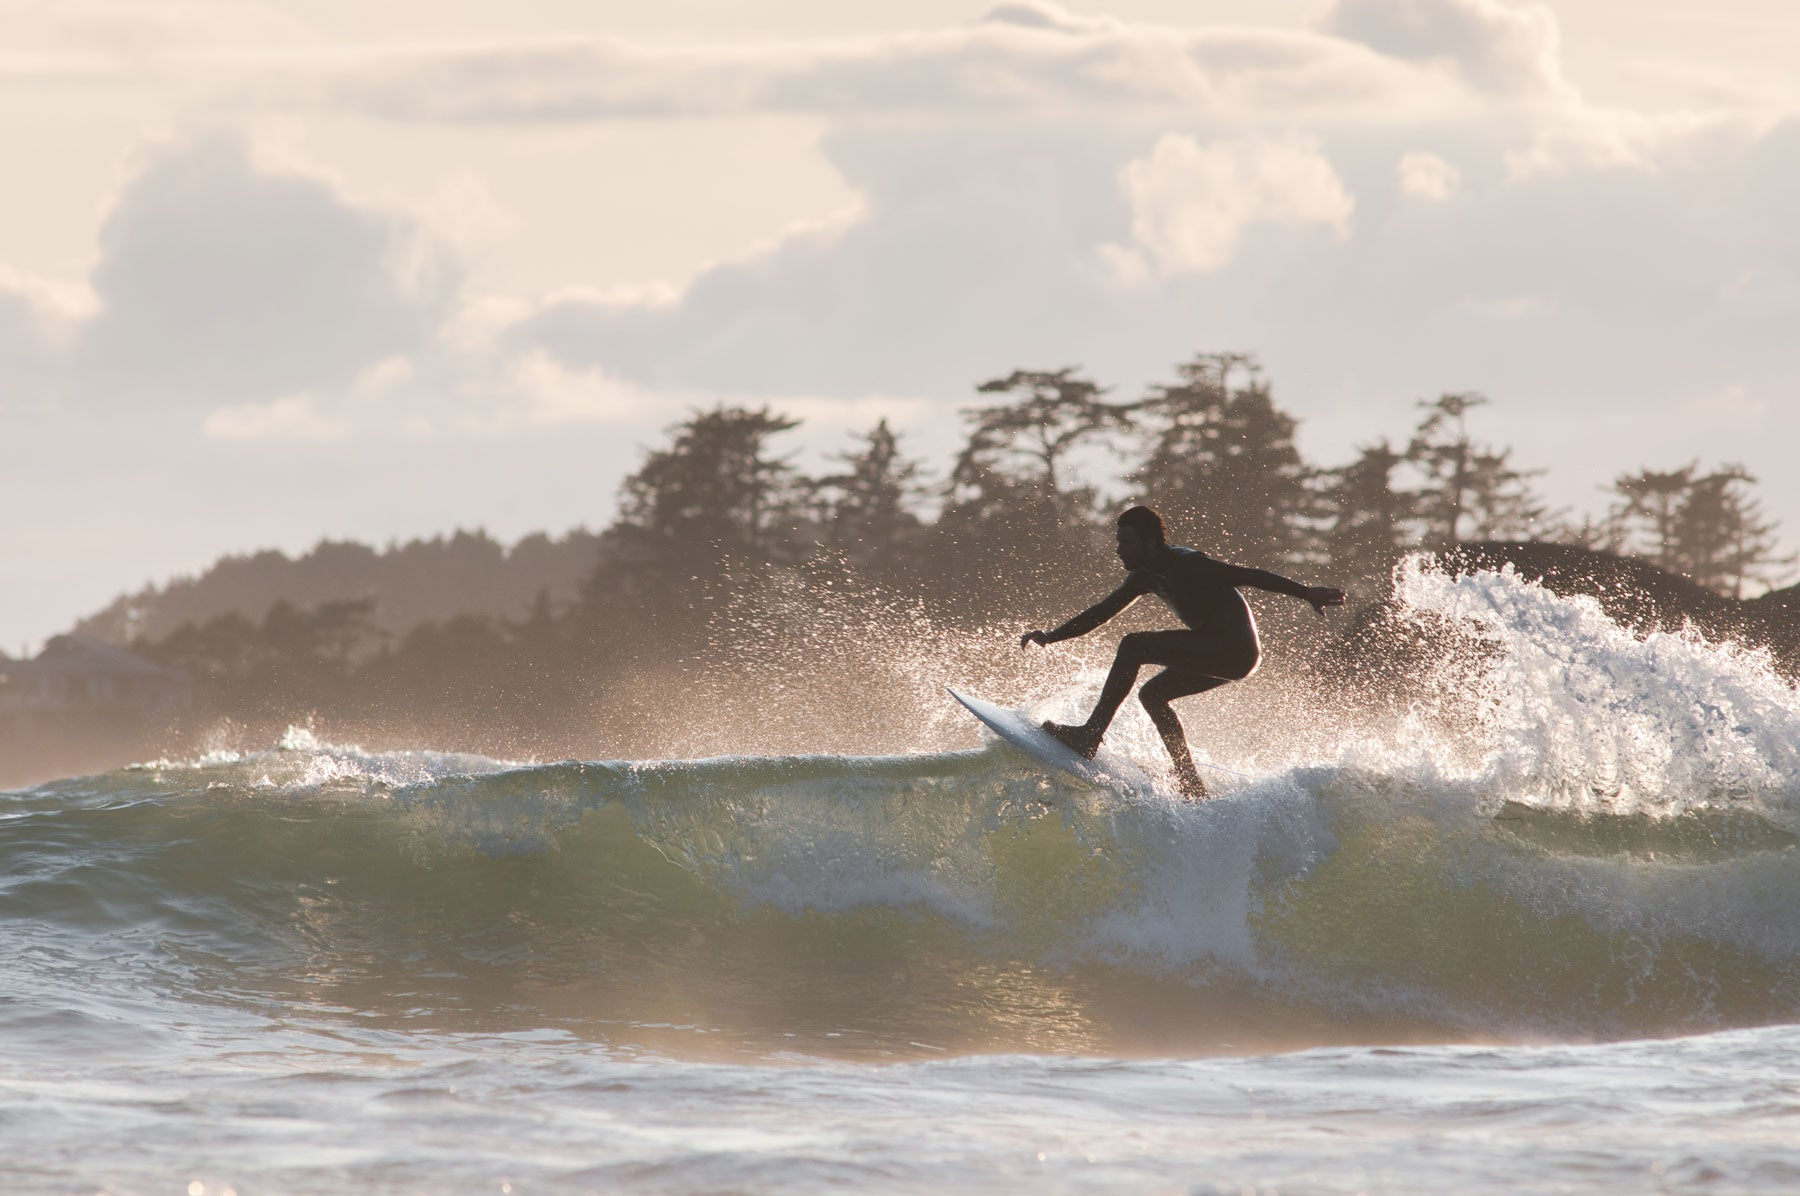 Joao shredding in Tofino